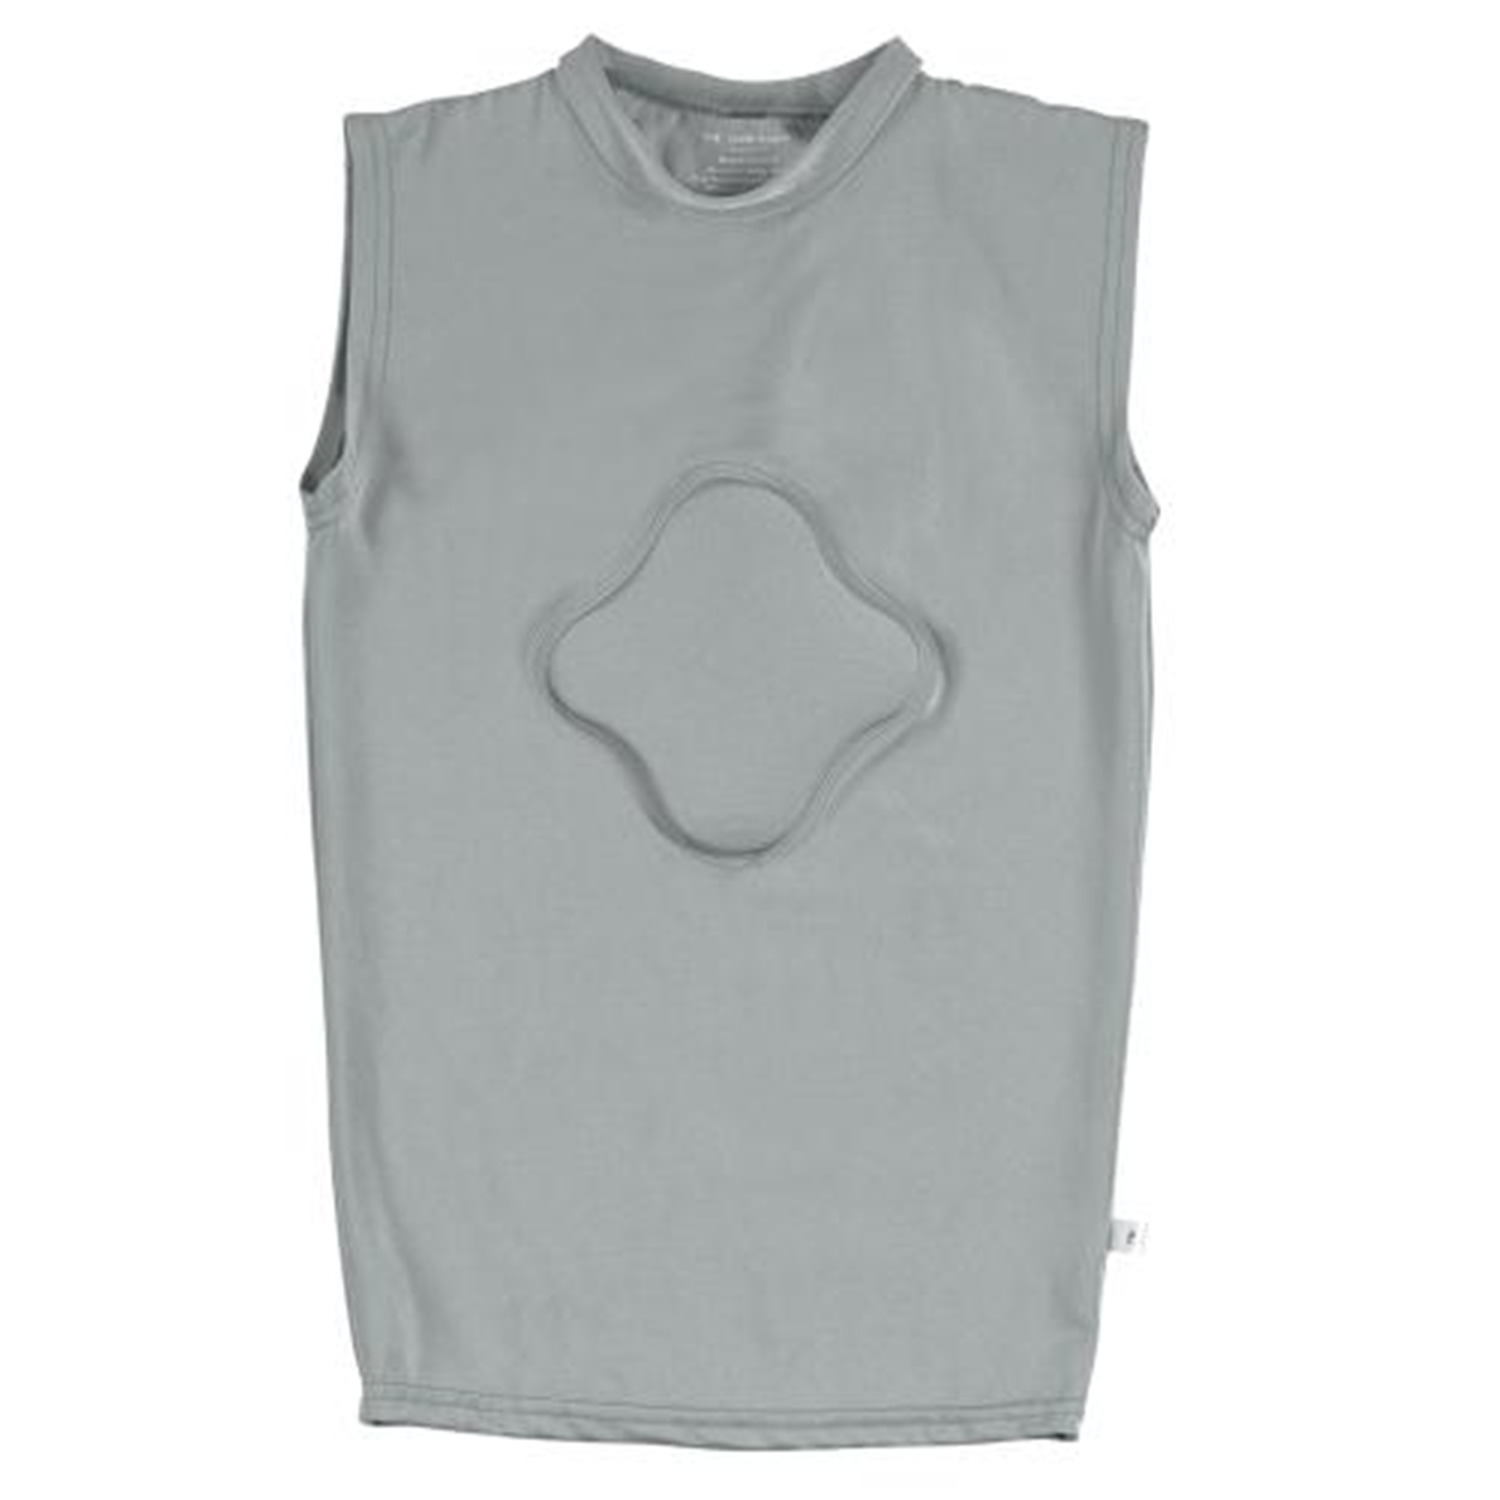 Markwort Heart-gard Adult Chest Predection Body Shirt Small Grey